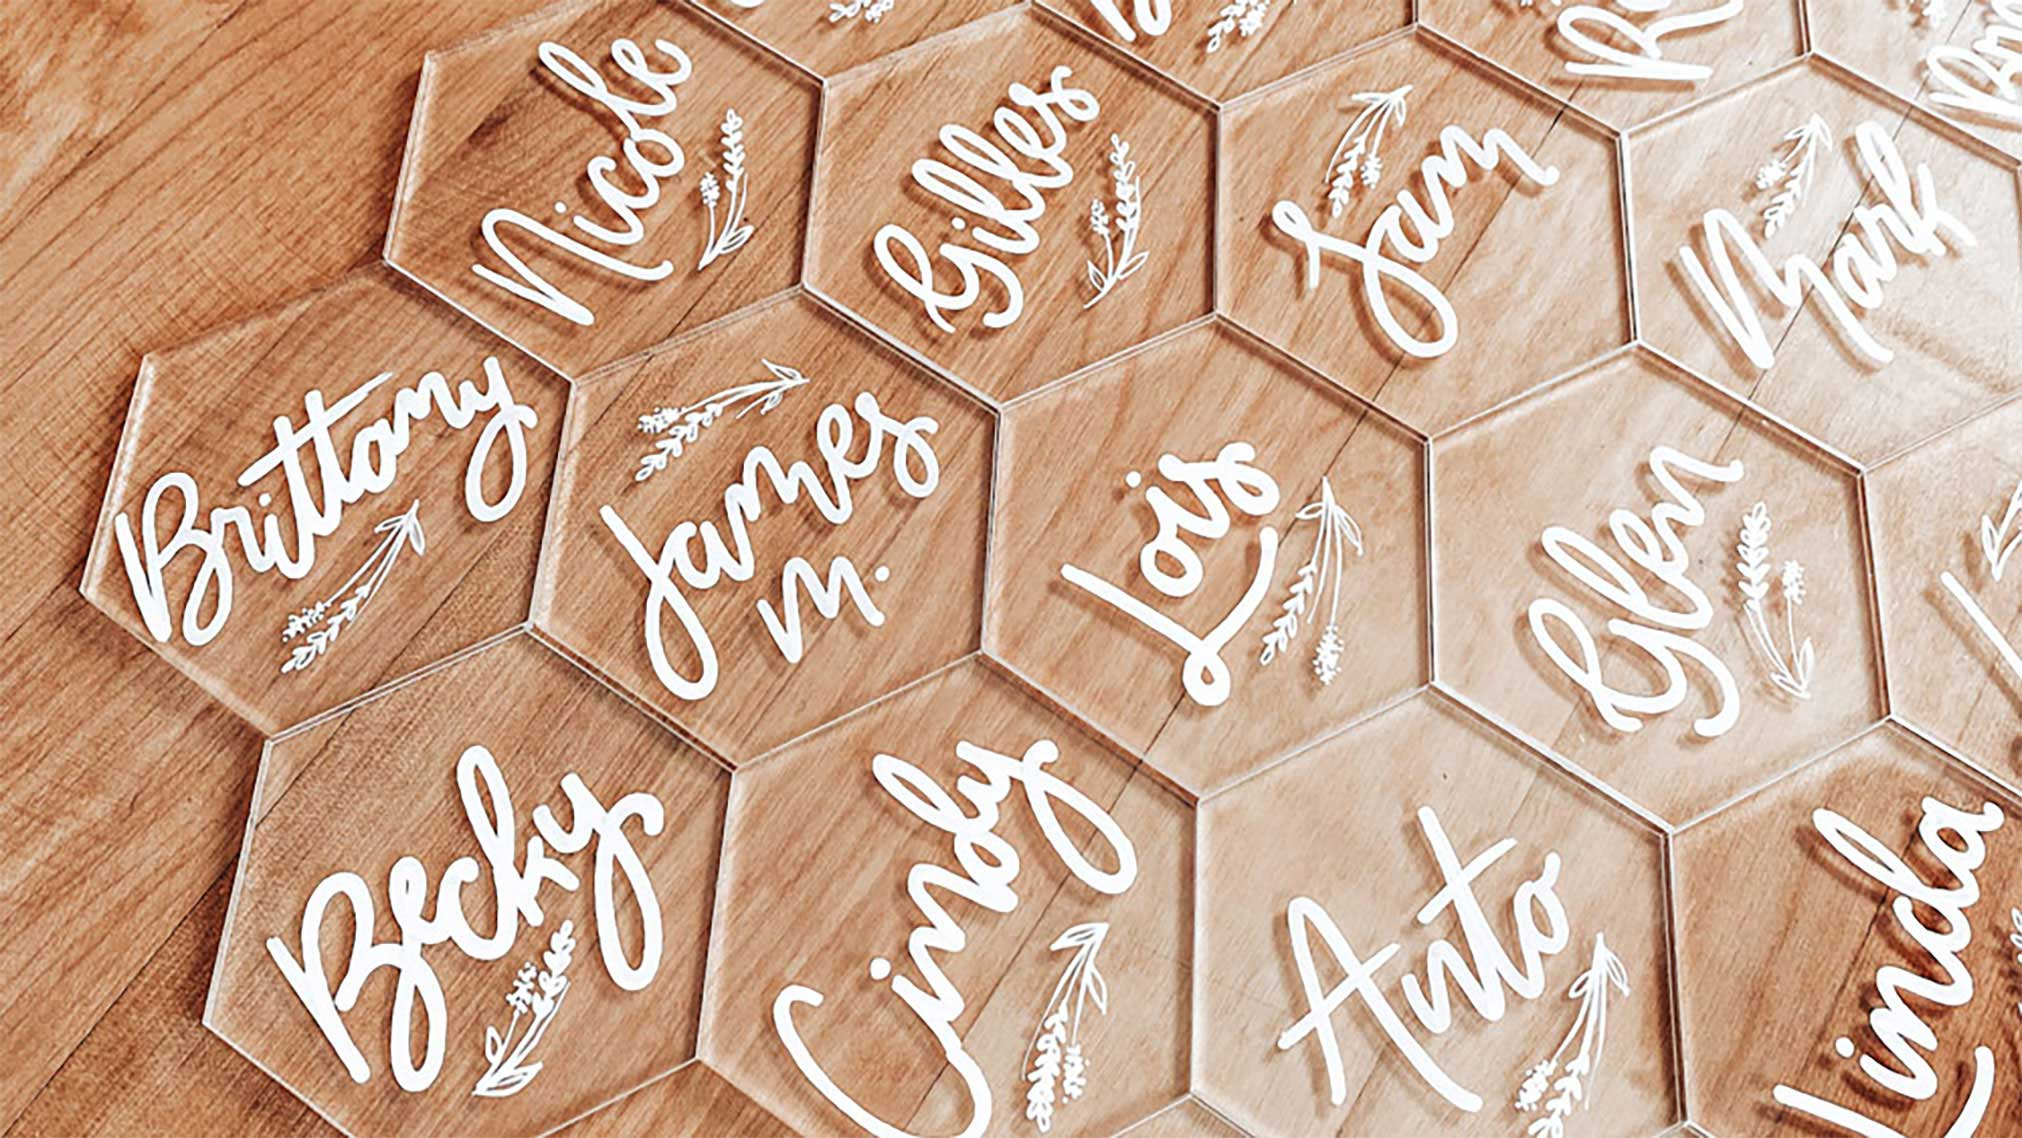 Hand lettered name plate place settings for a client's wedding written with oil paint sharpie on clear acrylic.